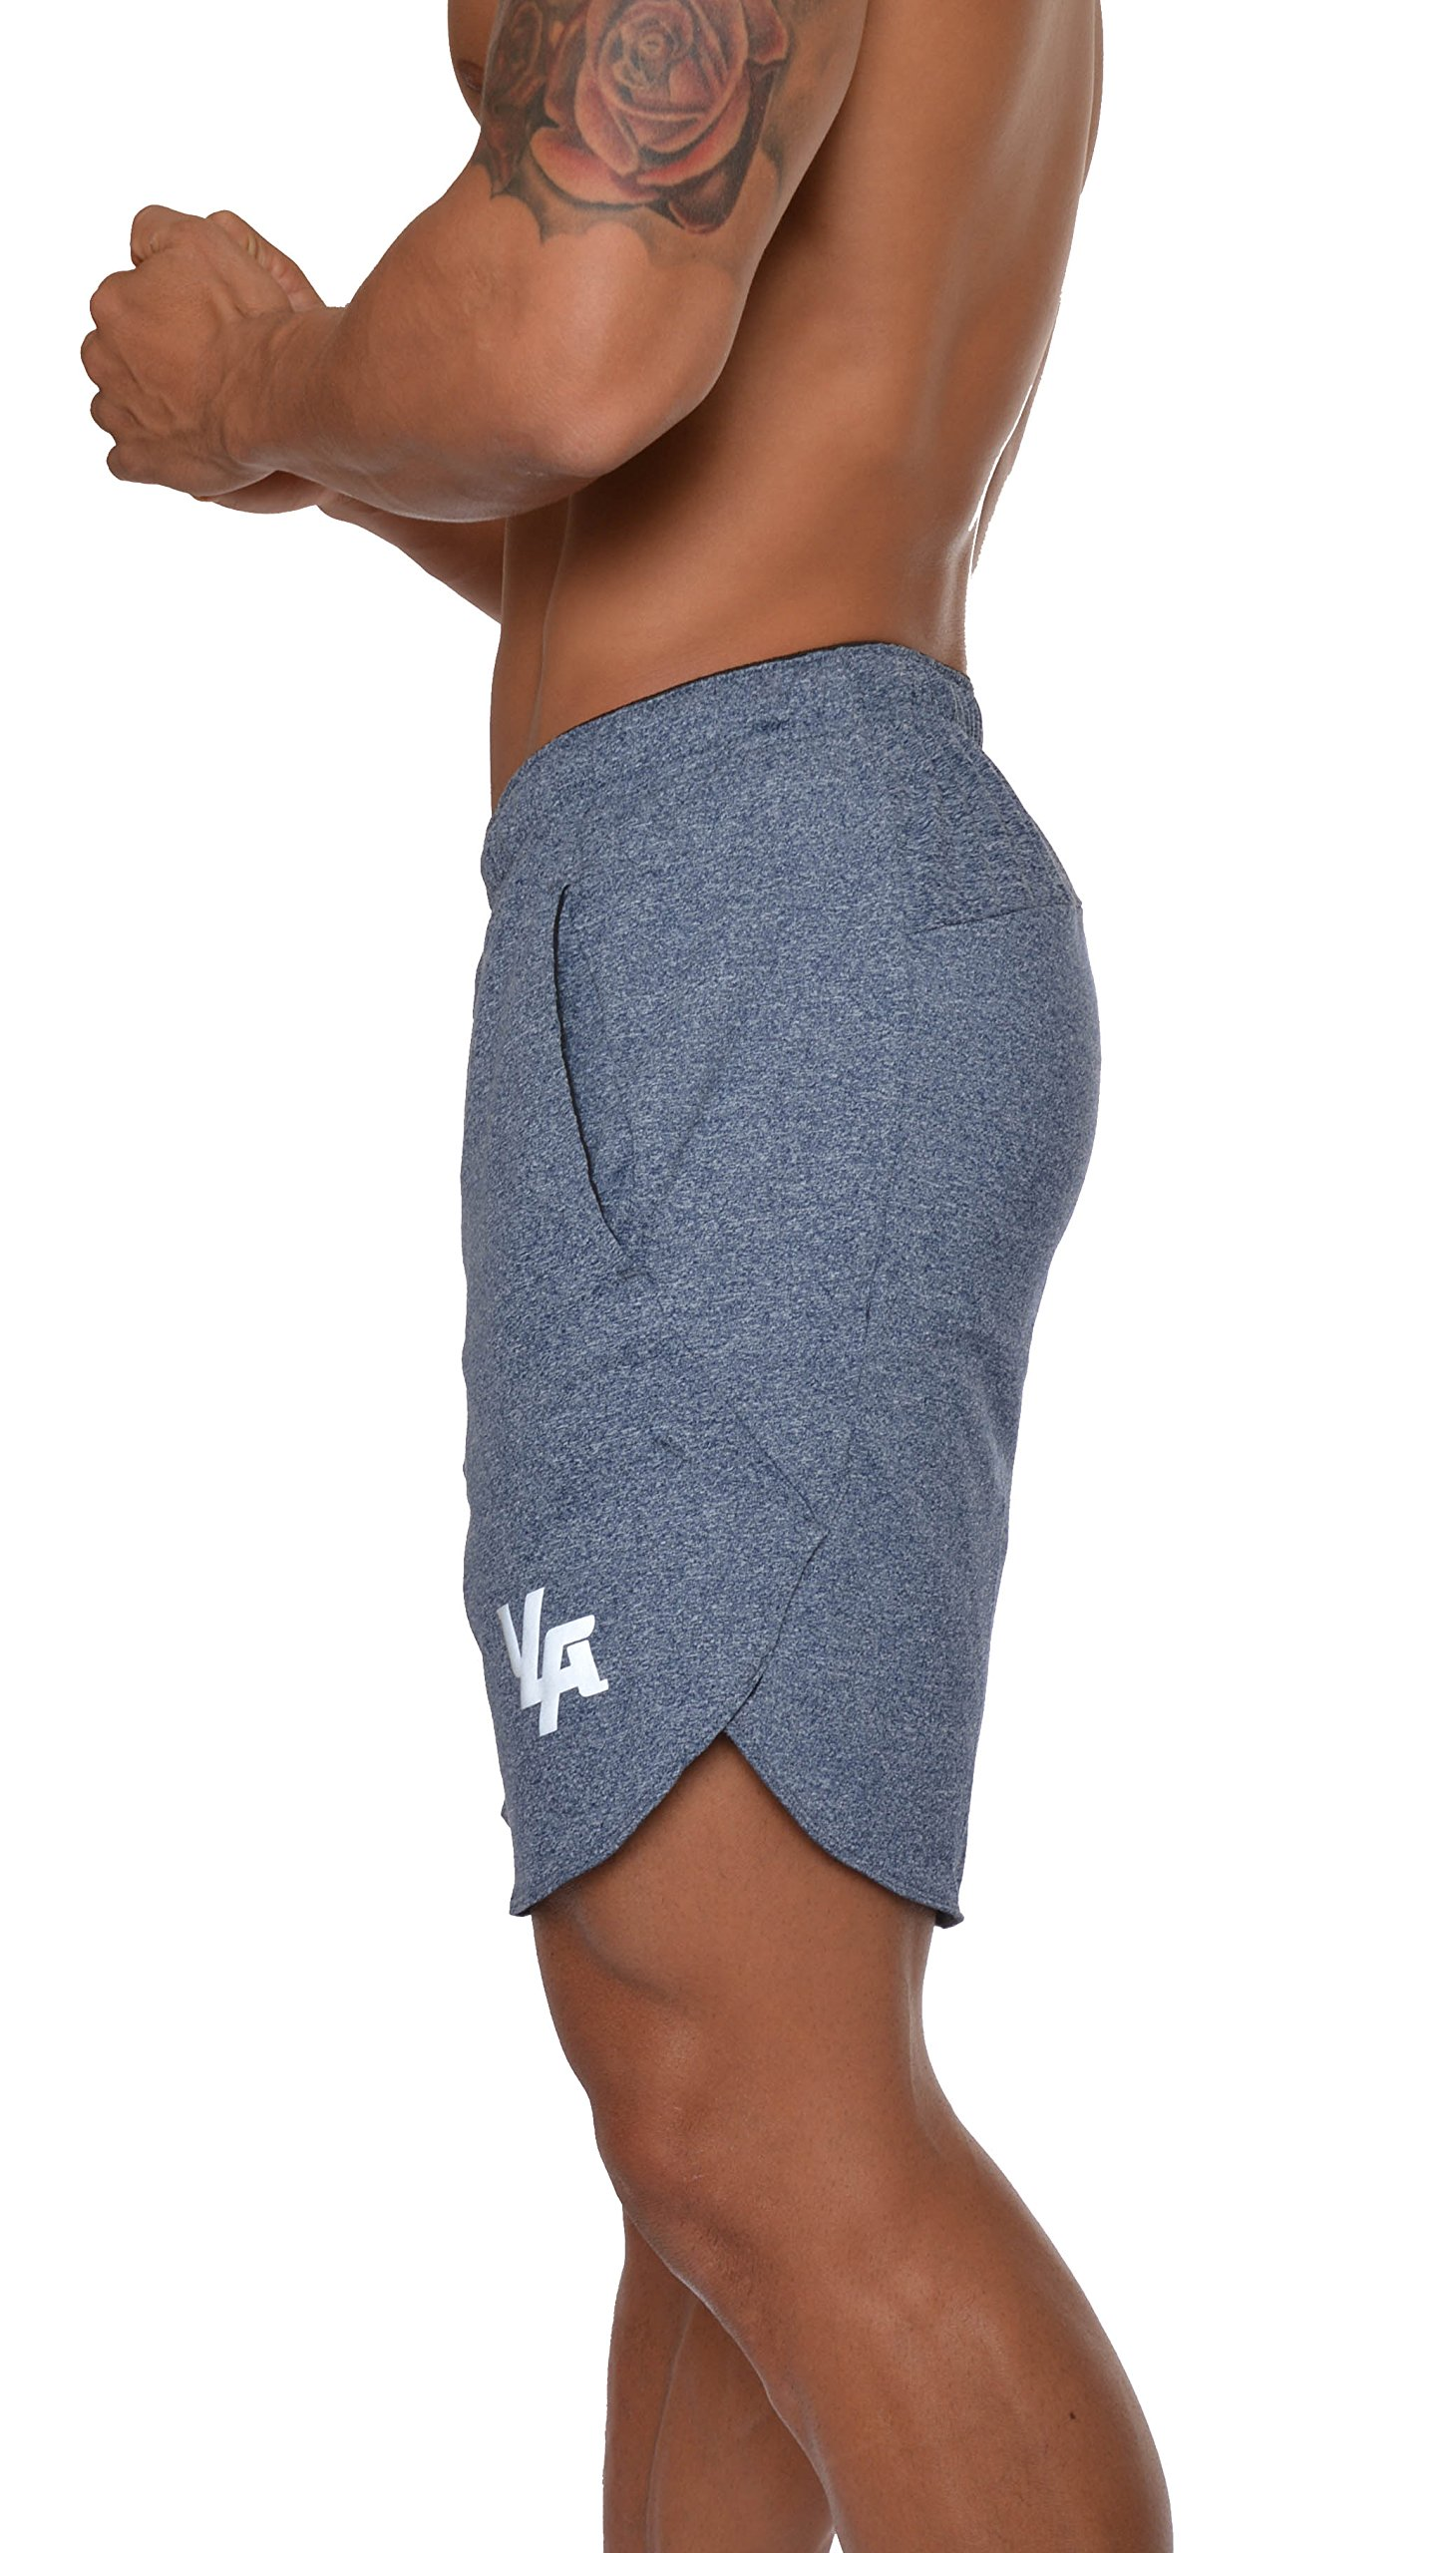 YoungLA Men's Running Shorts Athletic Gym Jogging